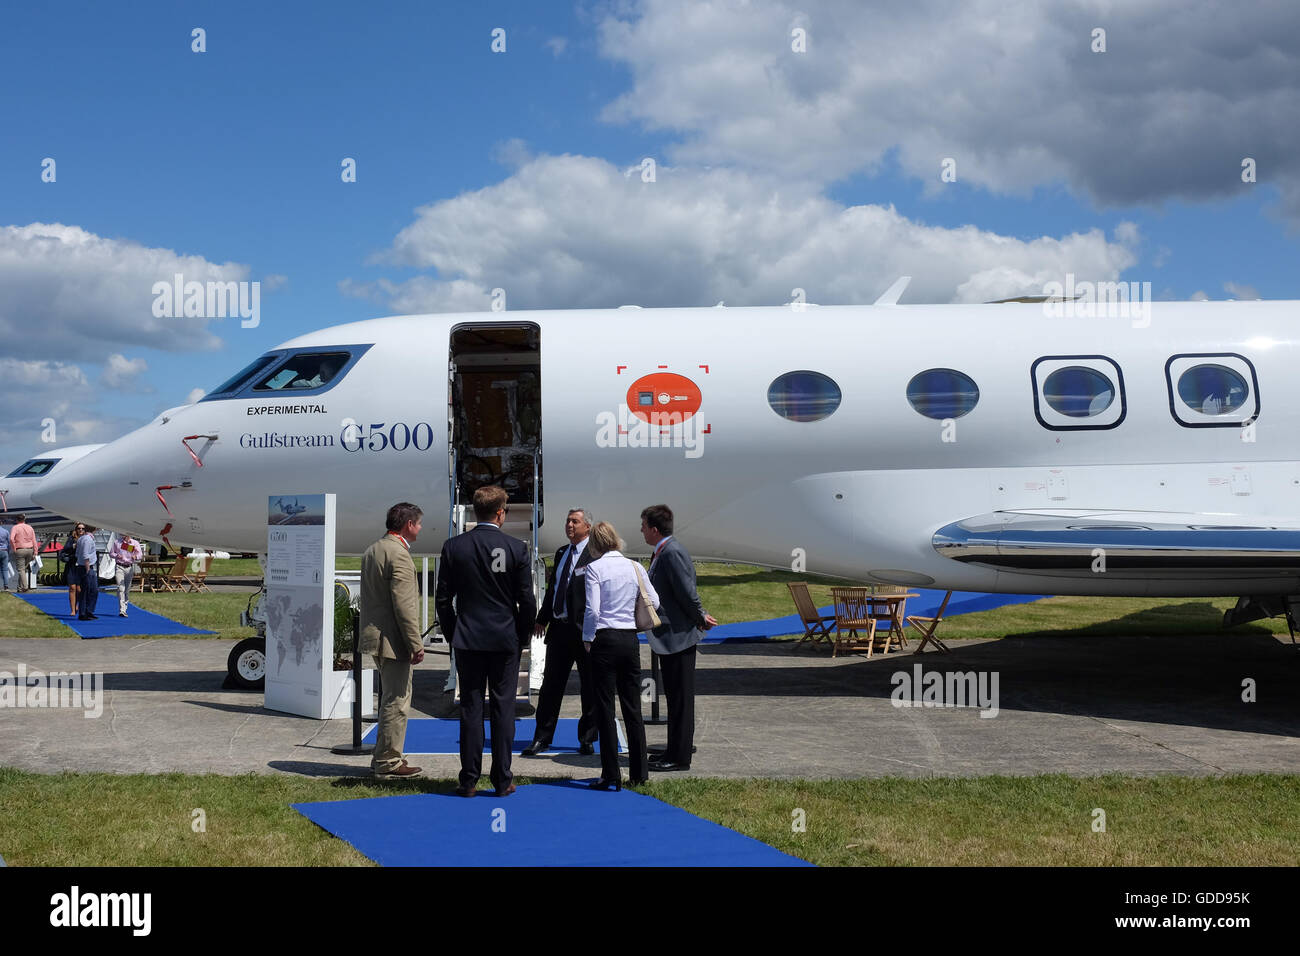 A Gulfstream G500 private jet on show at the Farnborough Airshow near London, England, in 2016. - Stock Image